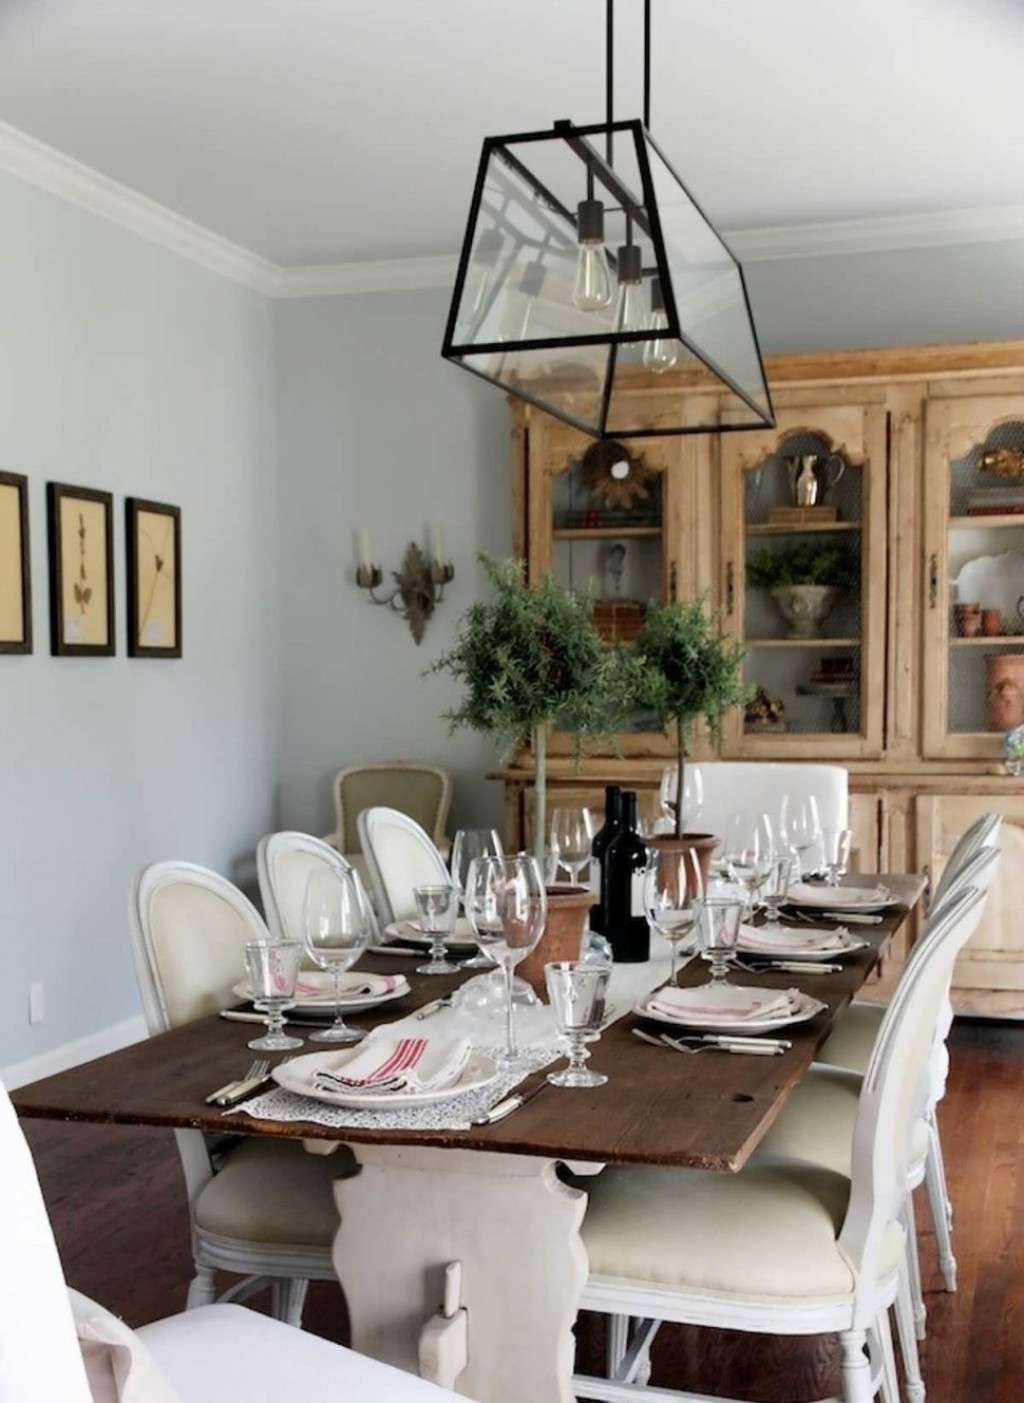 Indoor Lantern Chandelier Throughout Famous Square Lantern Chandelier Lantern Type Chandeliers Oversized Lantern (View 8 of 20)